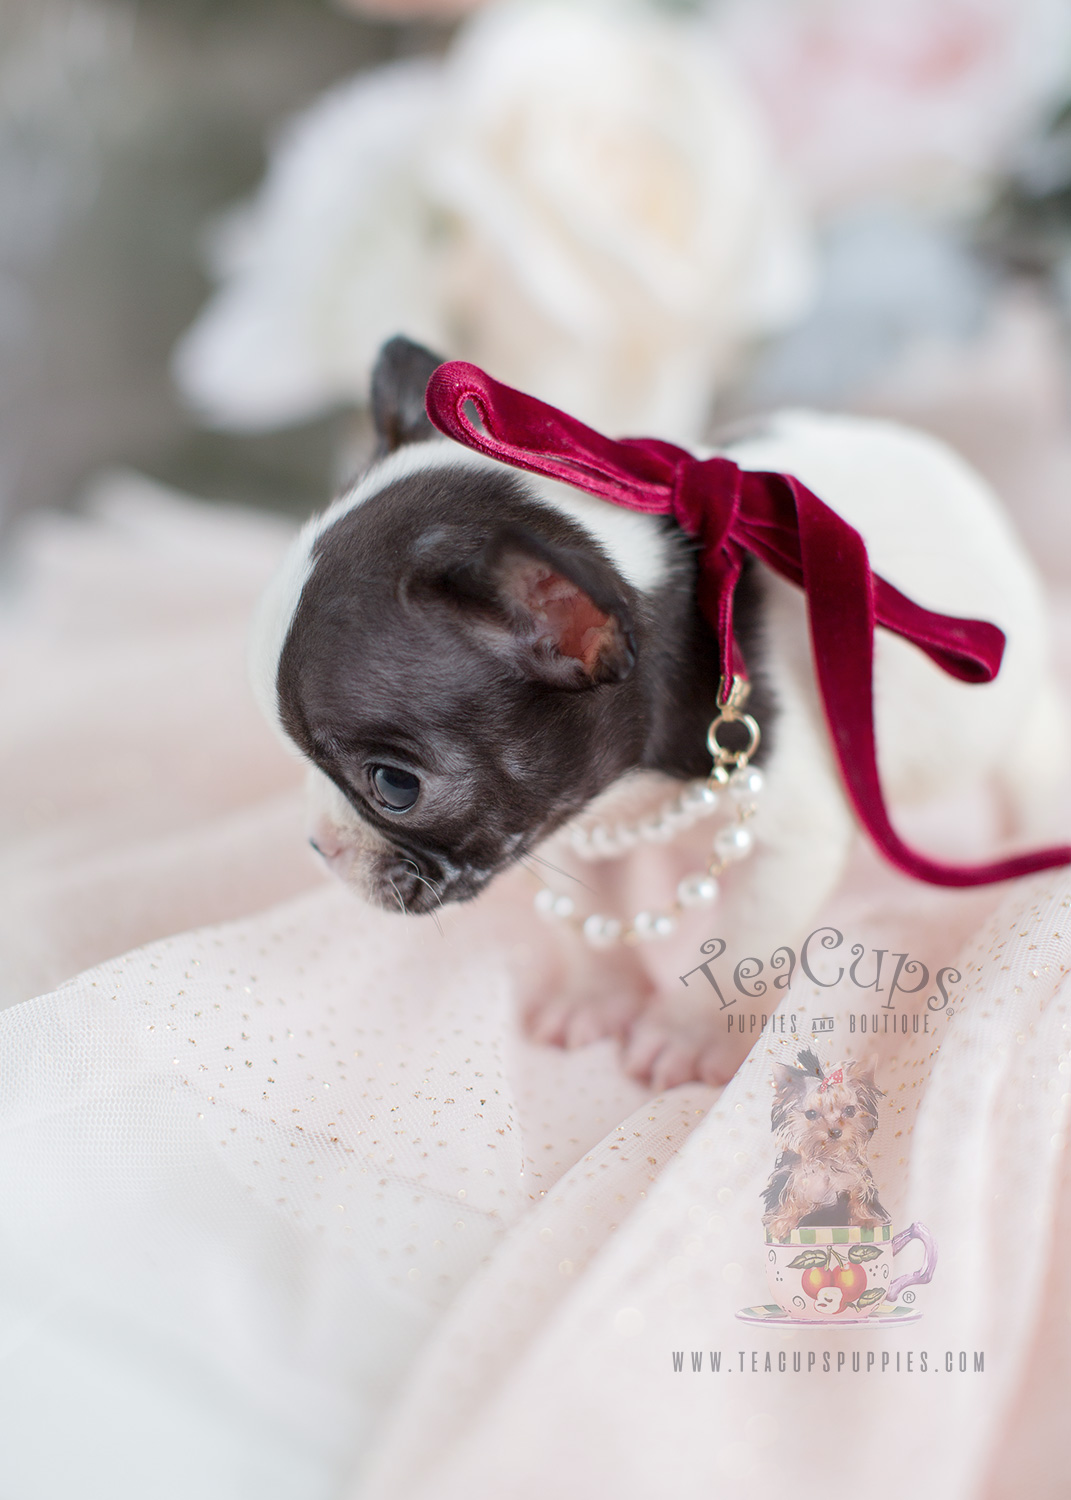 Frenchie Puppies For Sale Florida